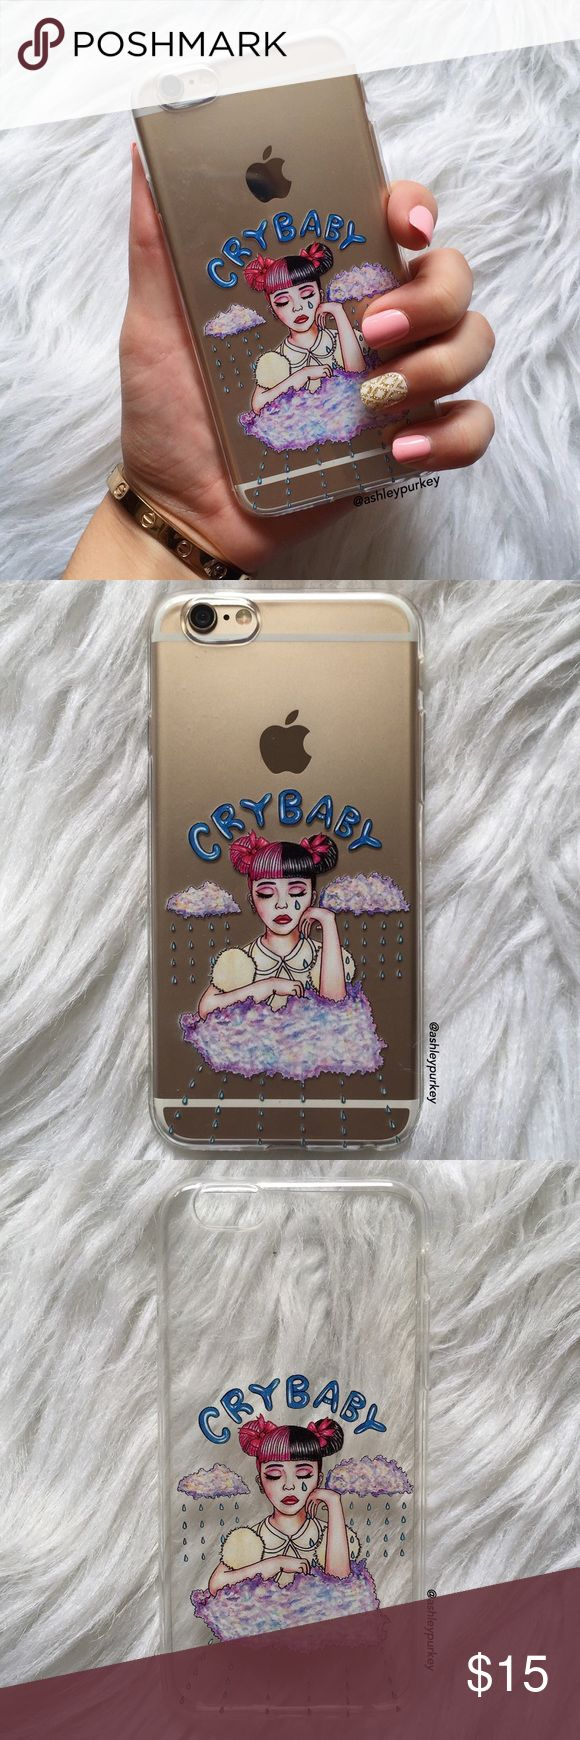 "Melanie Martinez crybaby iPhone 6/6s phone case •iPhone 6/6s (4.7"") •flexible silicone •phone not included •no trades *please make sure you purchase the correct size case. i am not responsible if you purchase the wrong size B-Long Boutique Accessories Phone Cases"